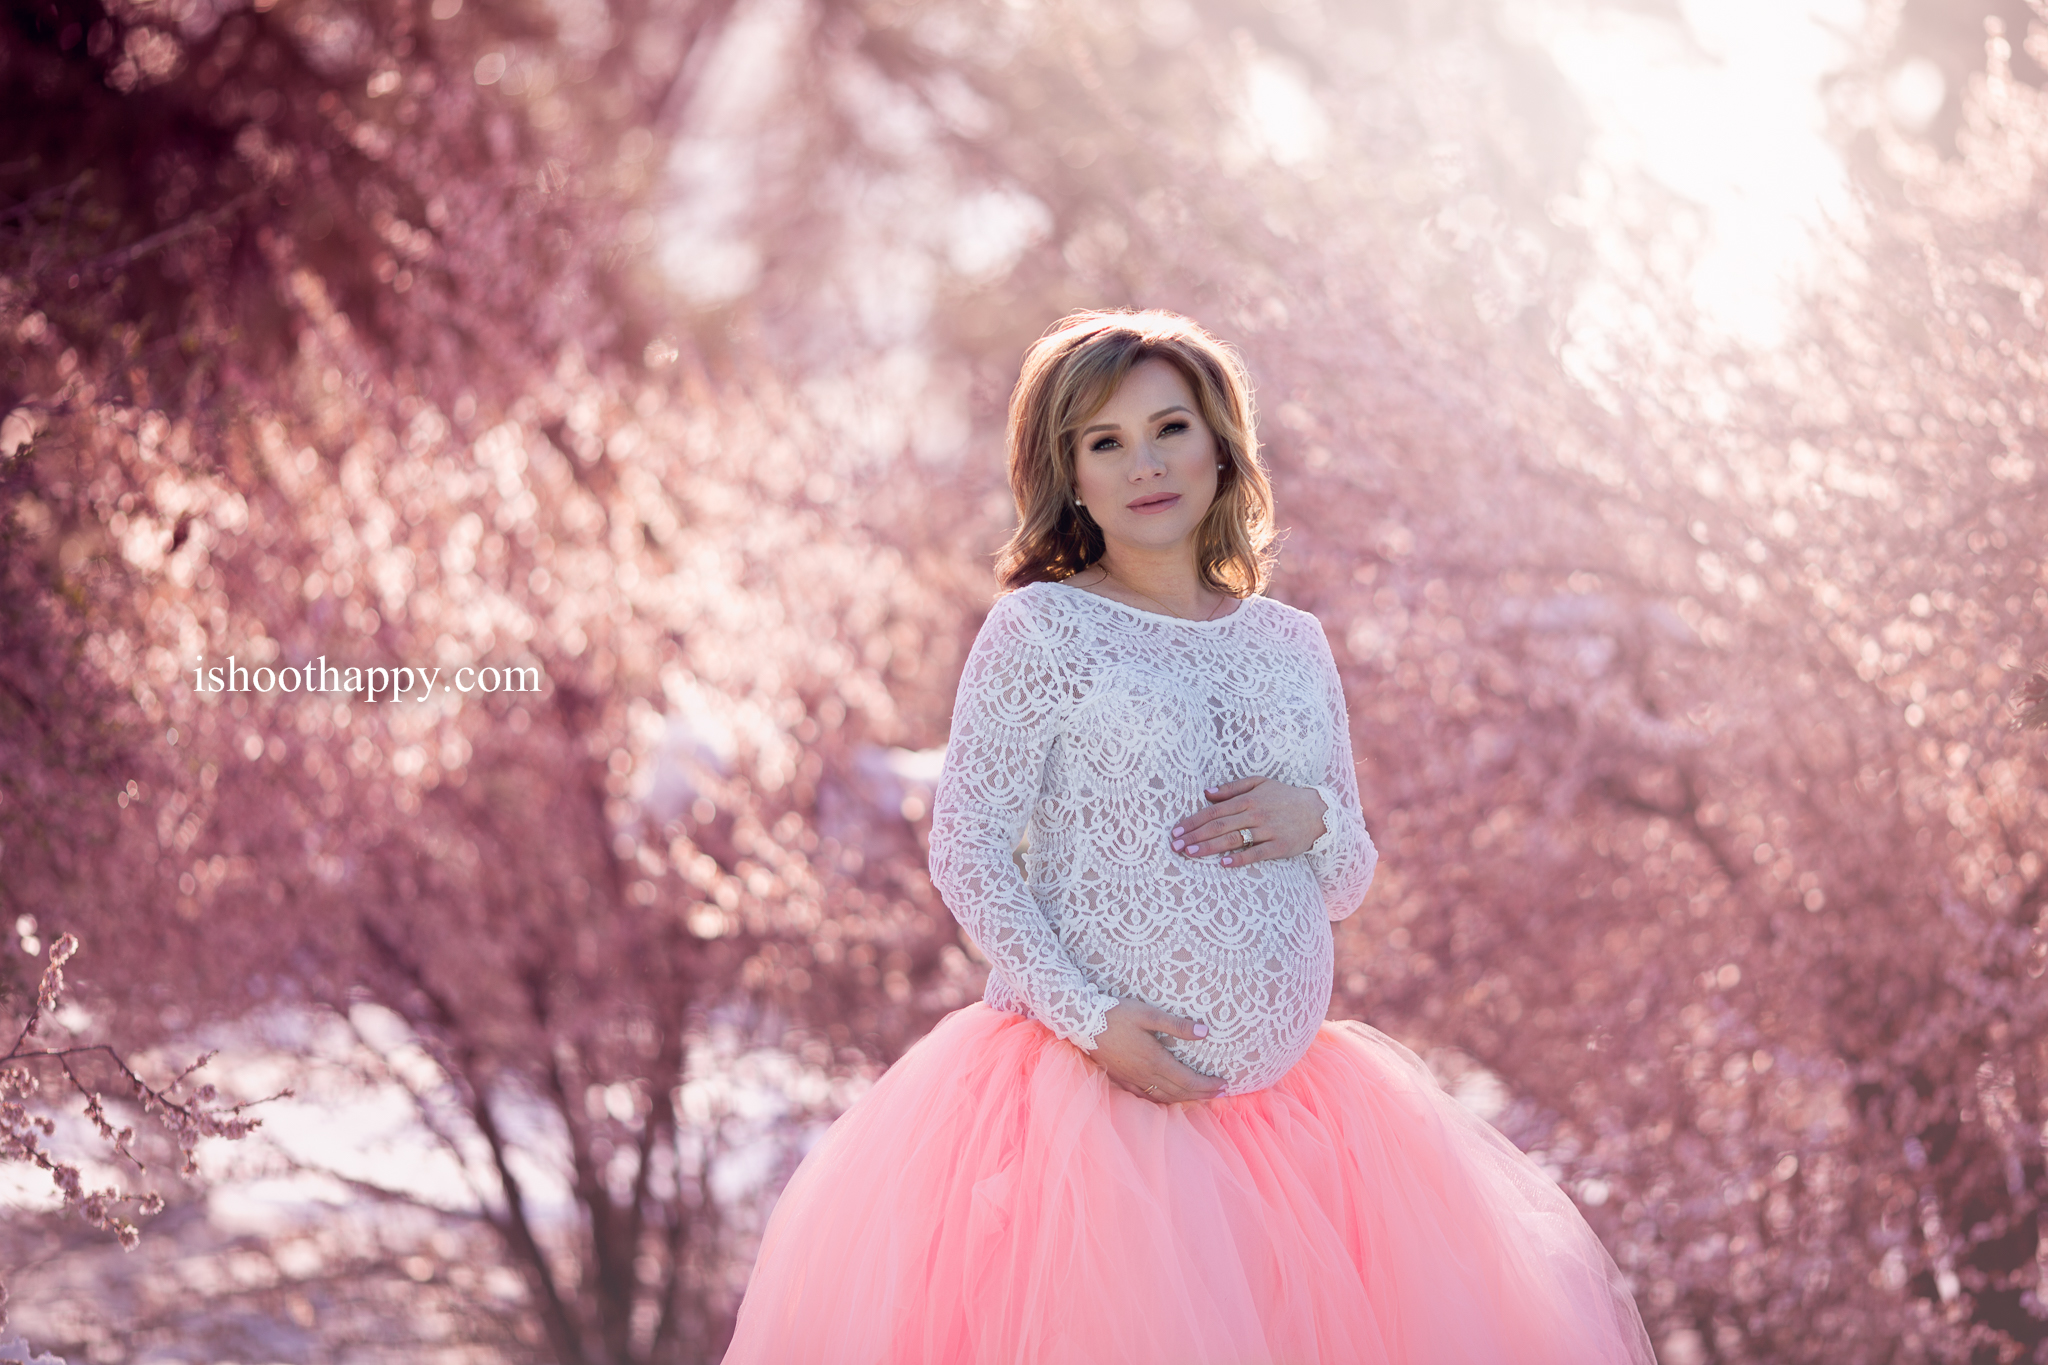 Denver Maternity Photo, Pregnancy Photography, Denver Pregnancy Photographer, Motherhood, Belly Photo, Maternity Photo Ideas, Best Denver maternity photographer, Photos of mom-to-be, Motherhood Photo